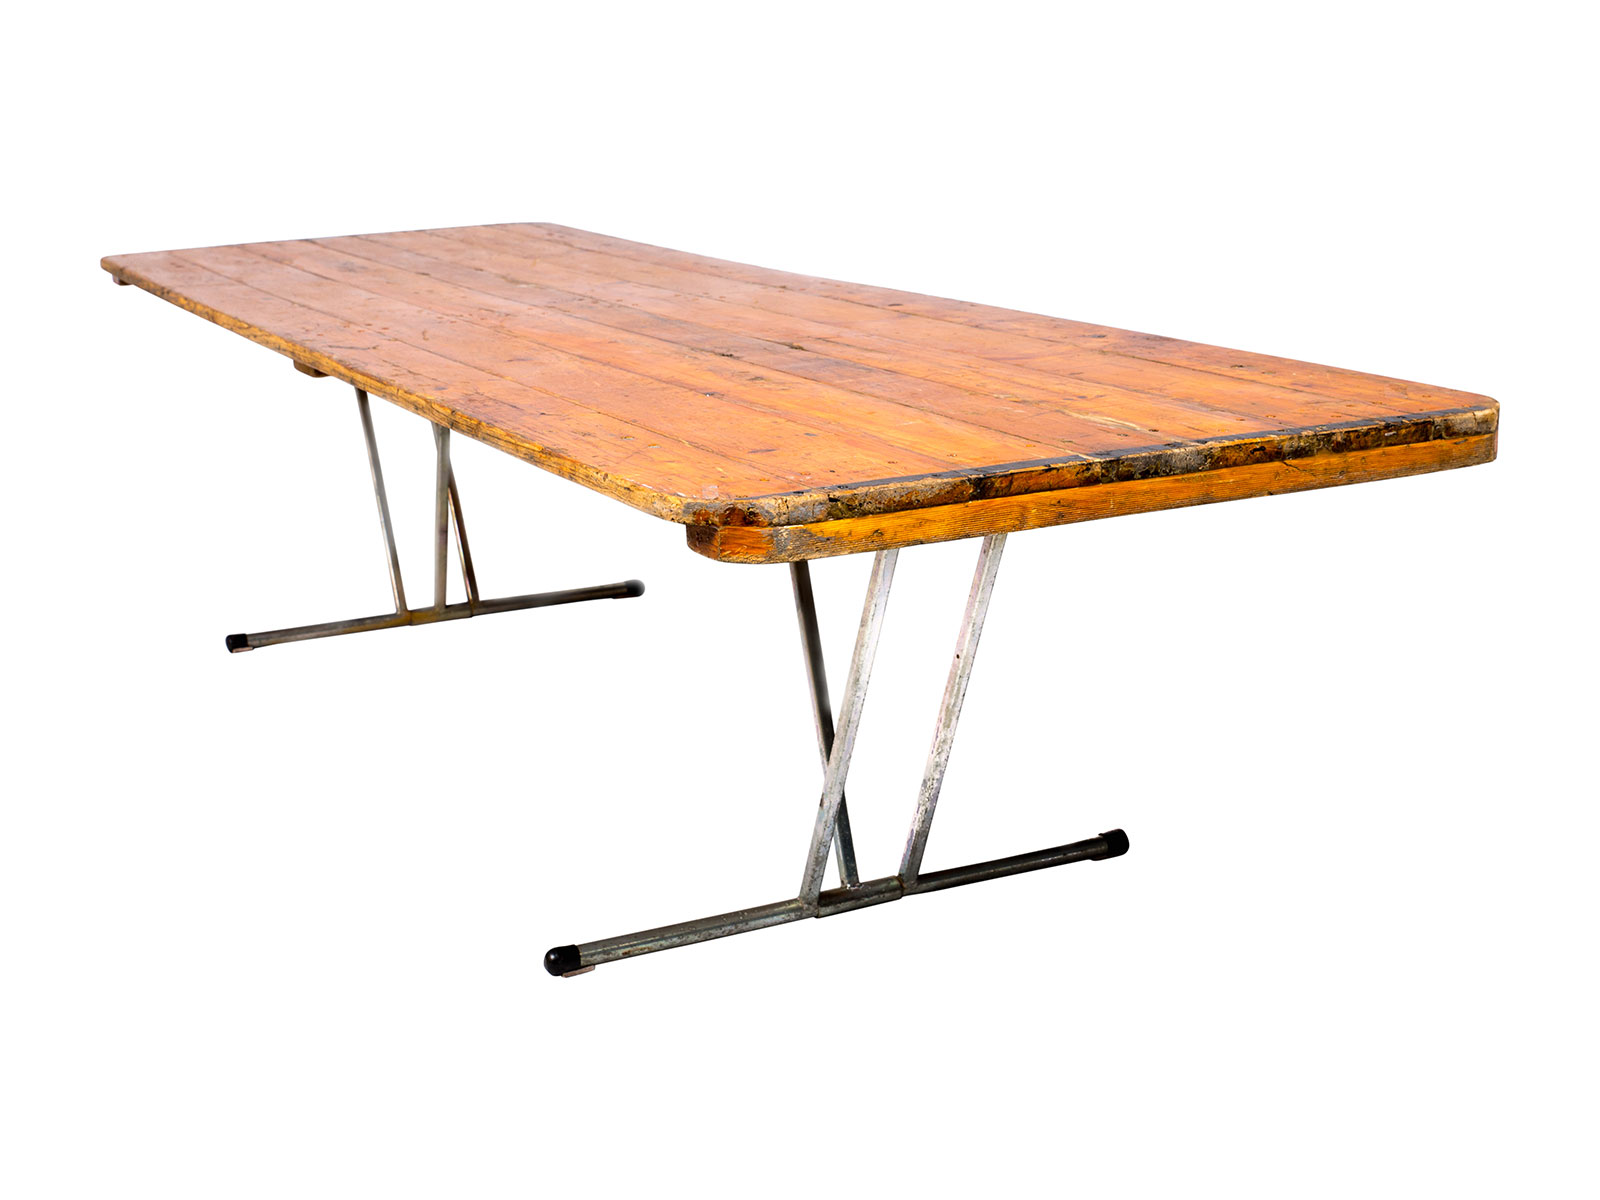 Children's trestle table